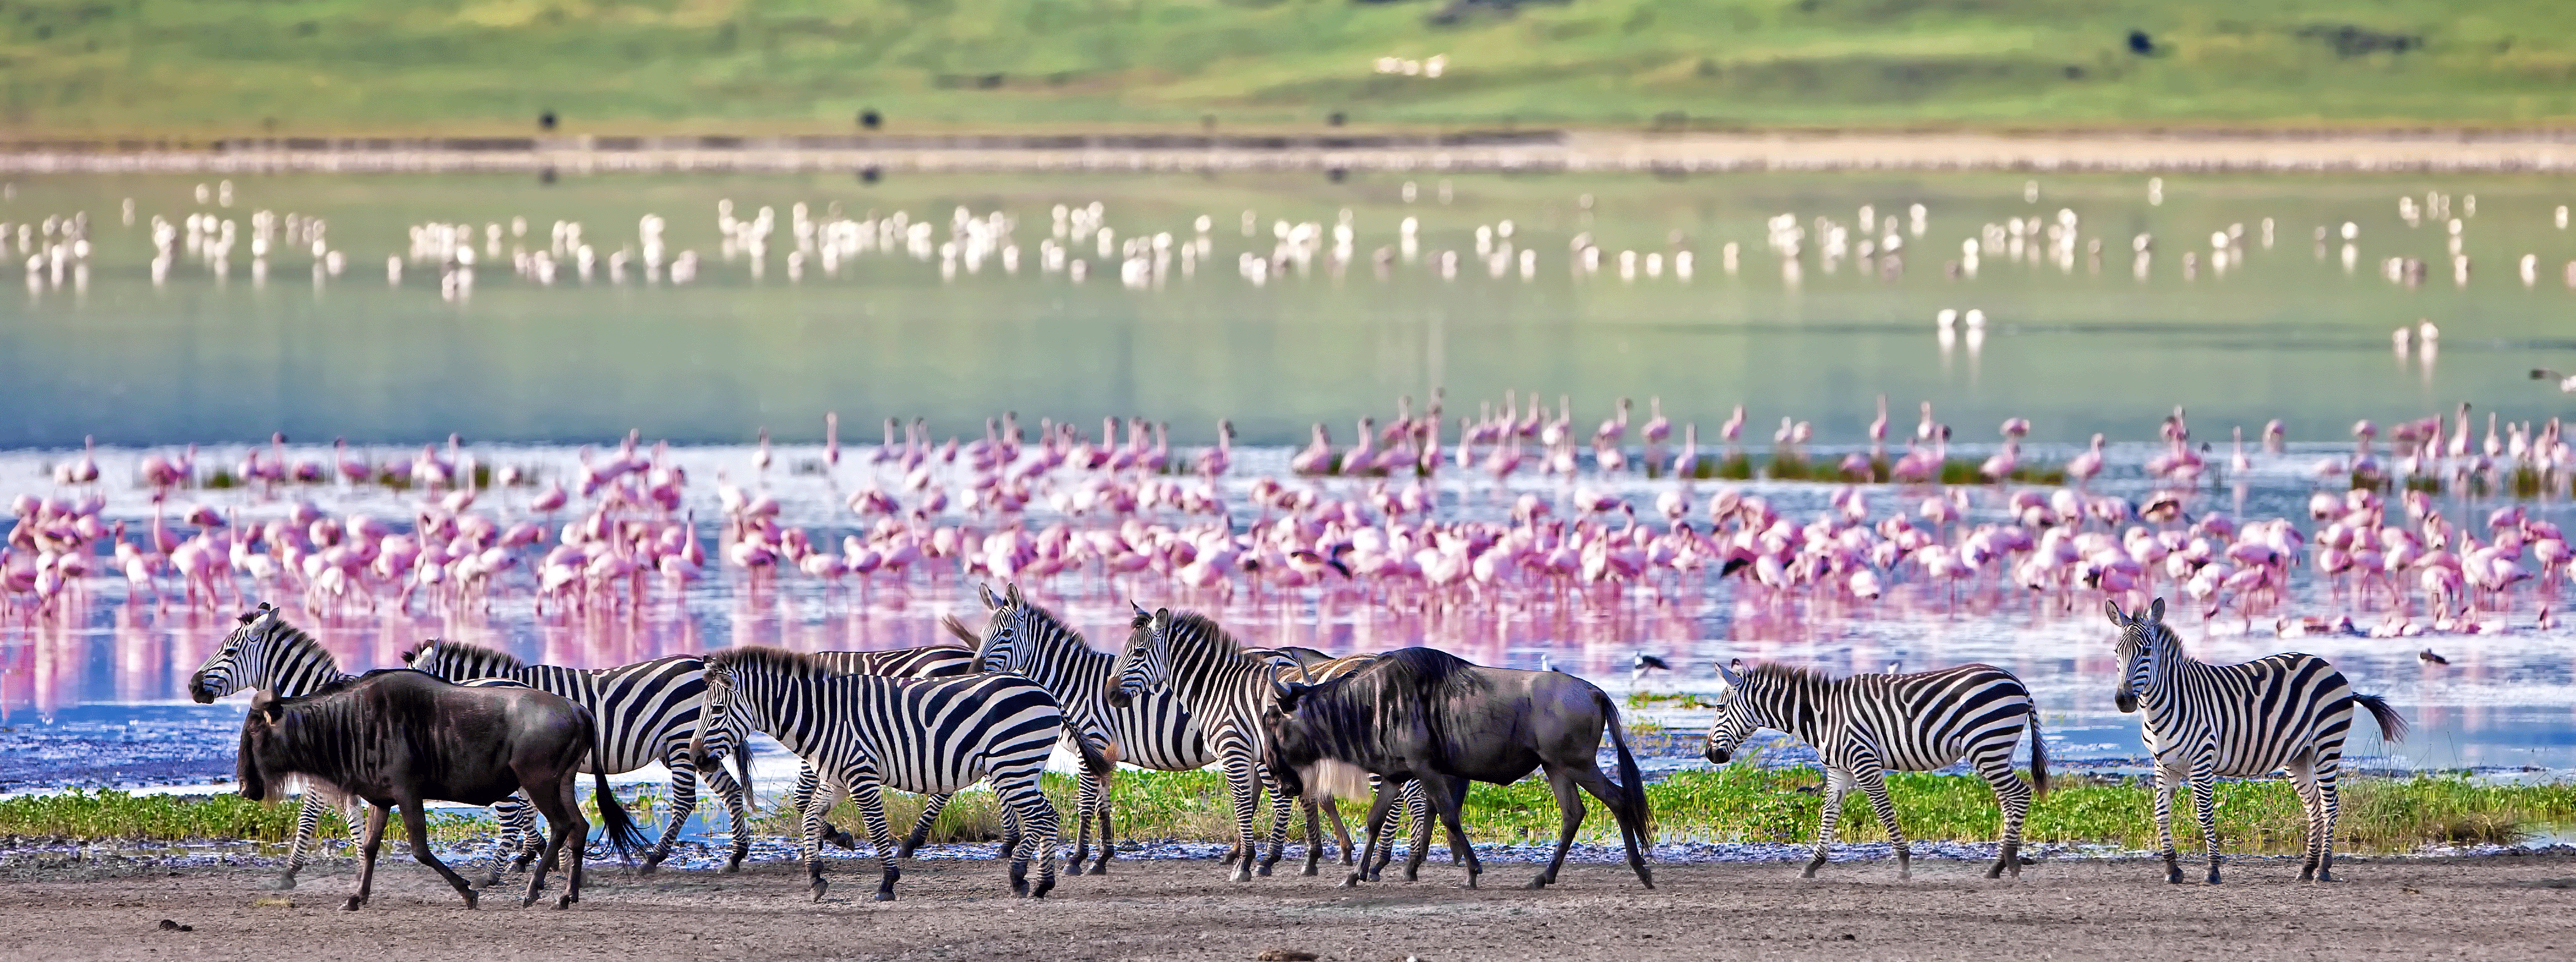 /resource/Images/Tanzania_Kenya/headerimage/Zebras-and-wildebeests-walking-beside-the-lake-in-the-Ngorongoro-Crater,-Tanzania,-flamingos-in-the-background.png